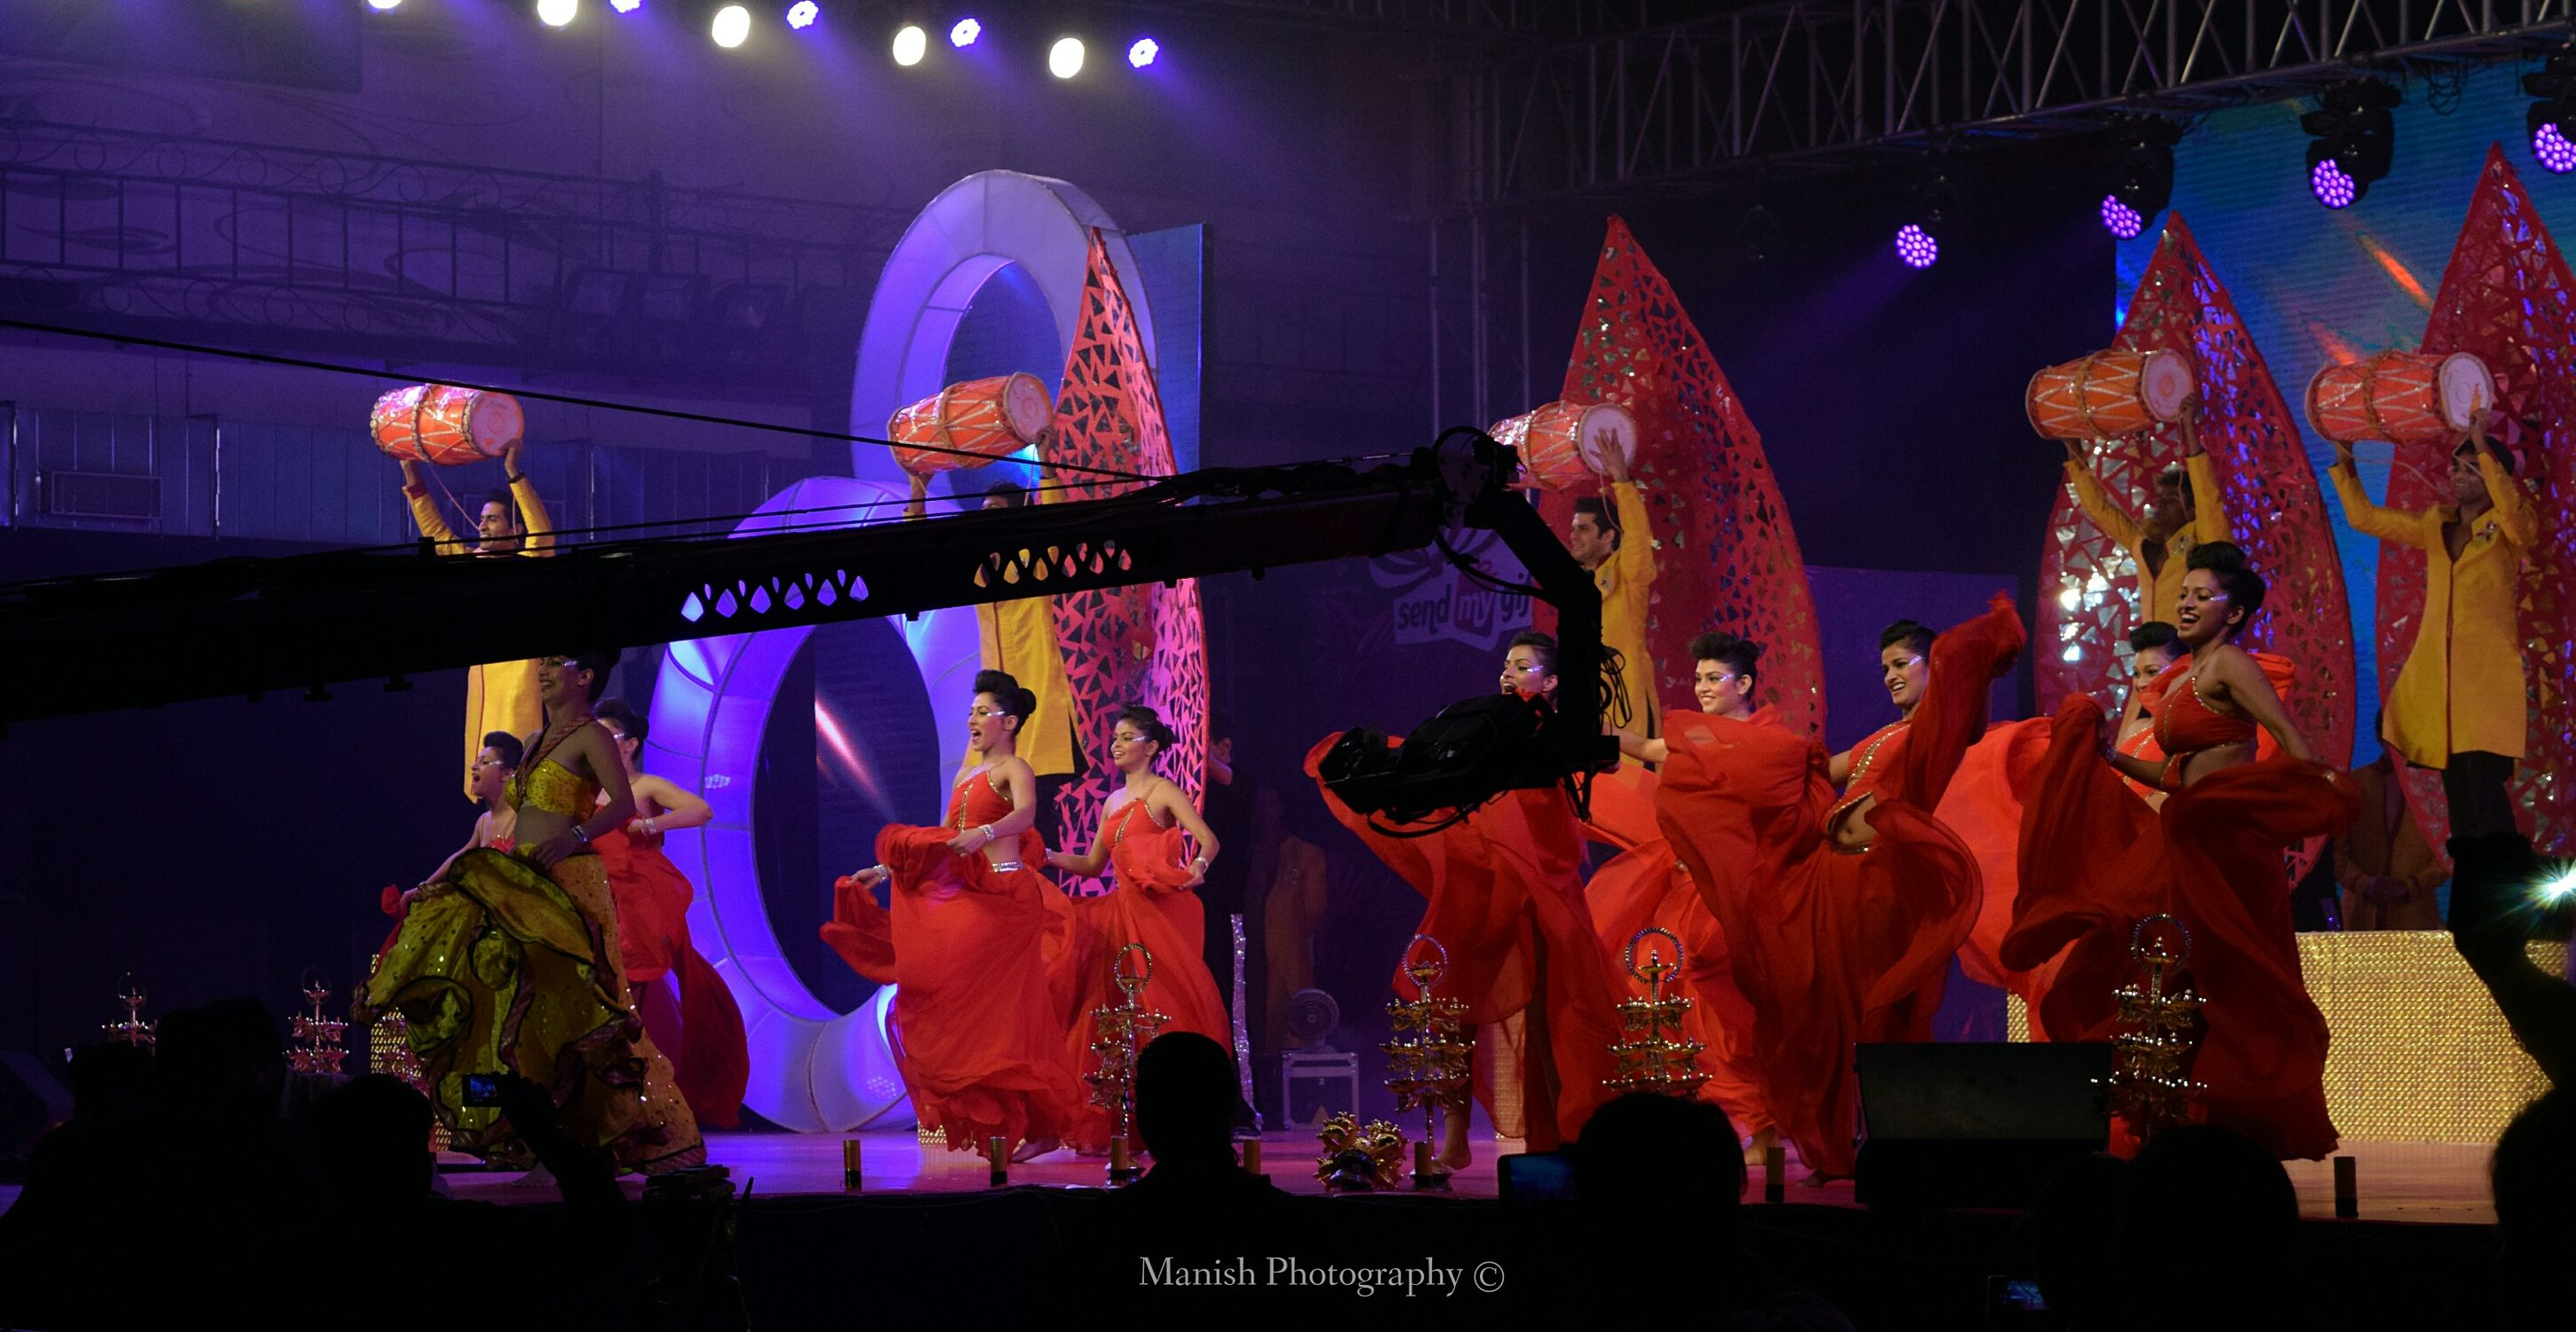 EventPhotography Popular Photos Bangalore Sendmygift Hrithikroshan